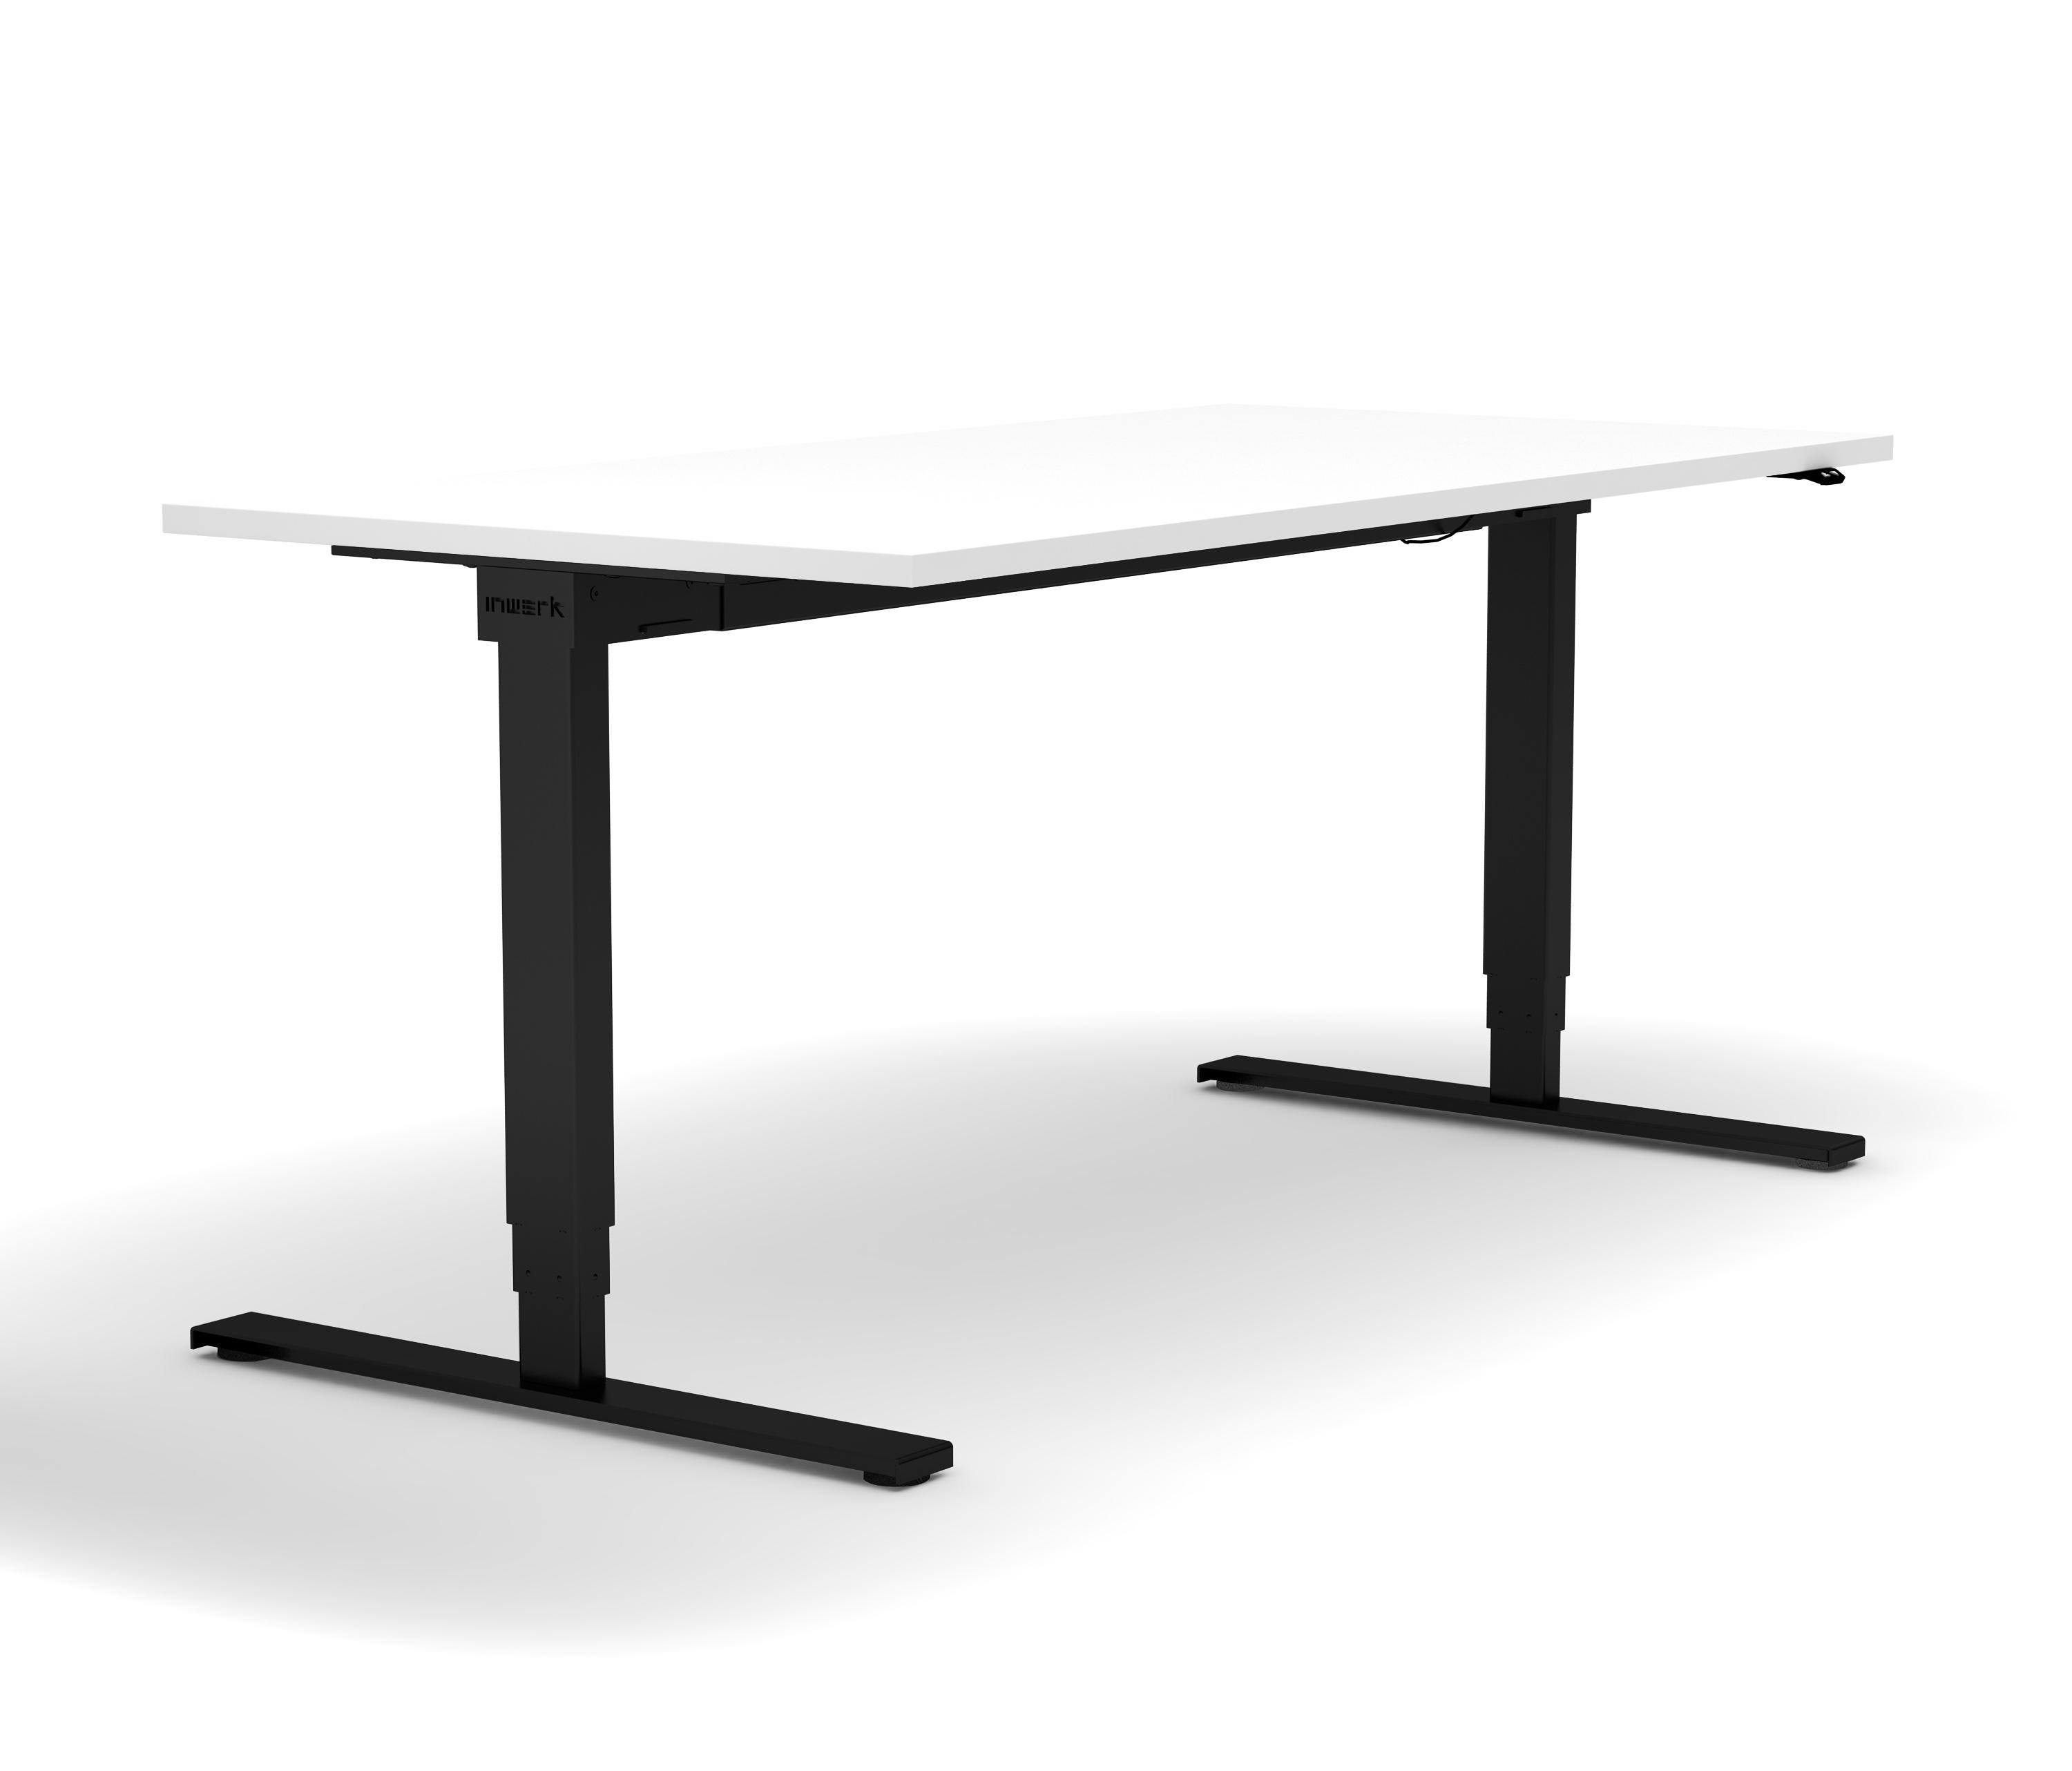 cherry height adjustable tables select impression crank legs leg all desk product c about enwork